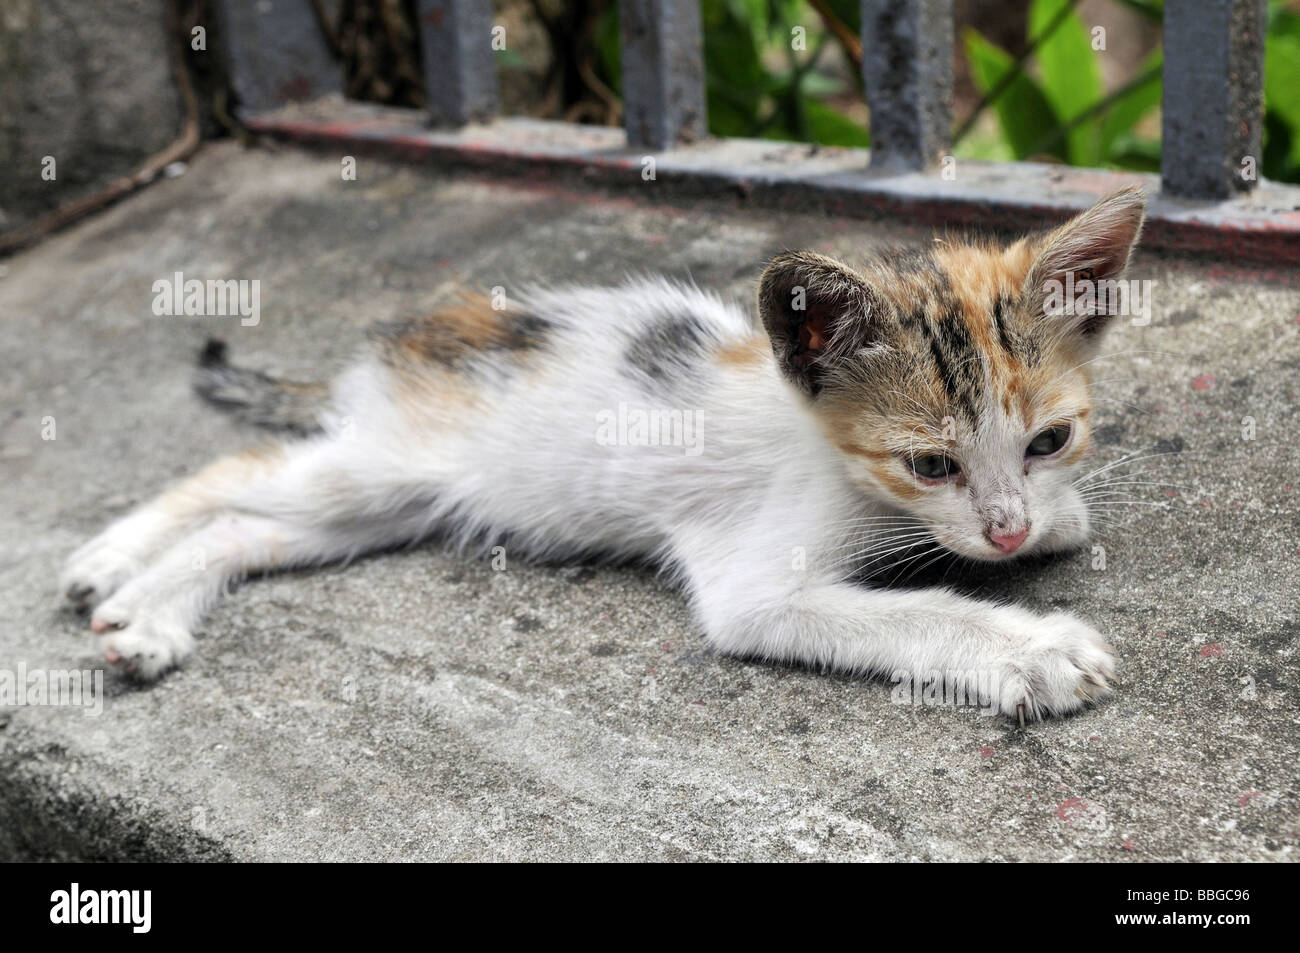 Lean young cat - Stock Image